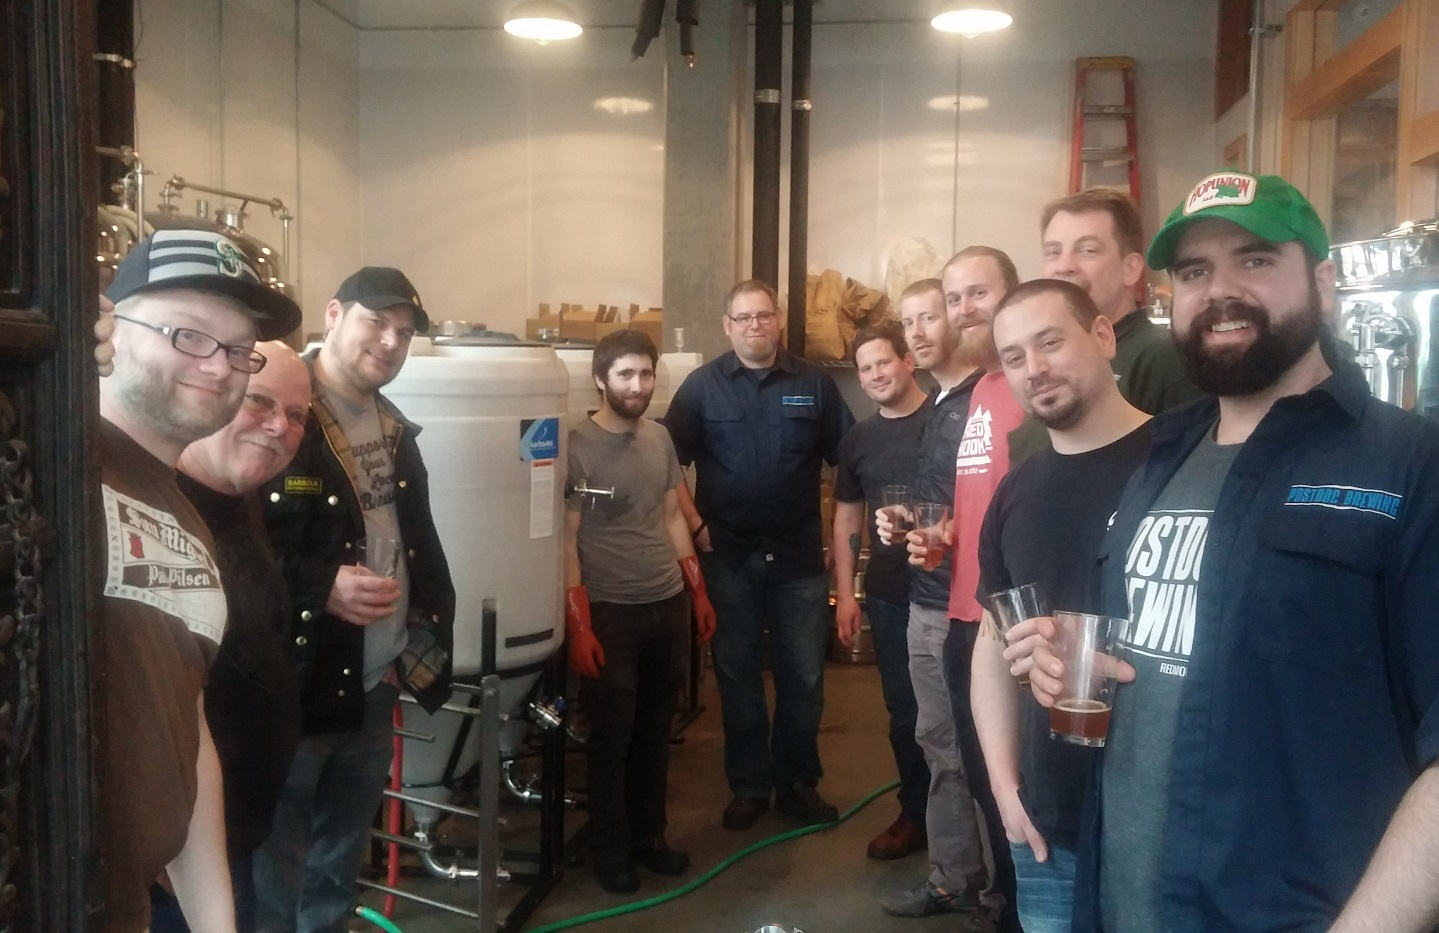 2016 Herbert's Brew Crew on Feb 11, 2016 (image courtesy of Washing Brewers Guild)